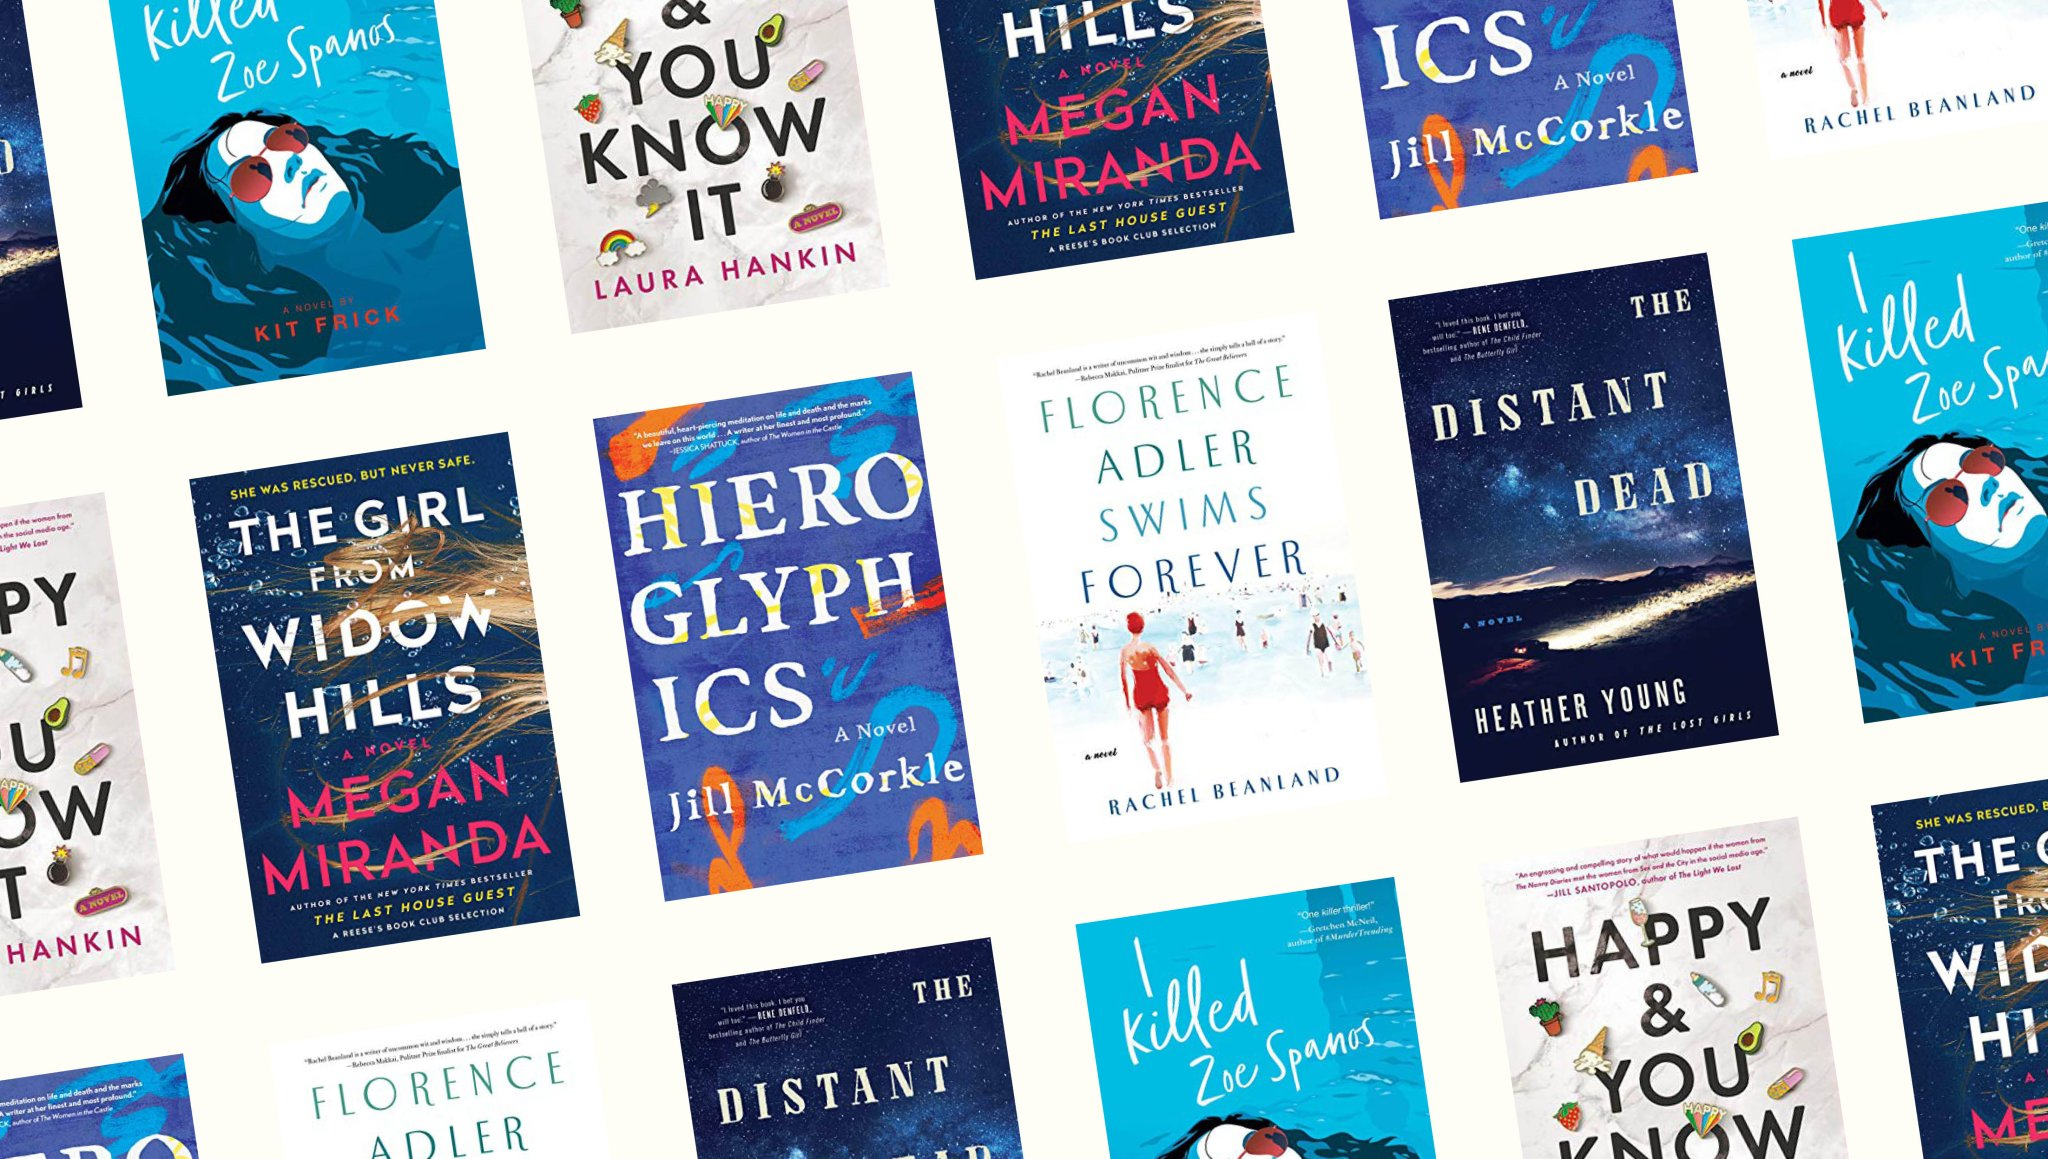 Turn Off Netflix! We've Got the 26 Best Books to Read This Summer